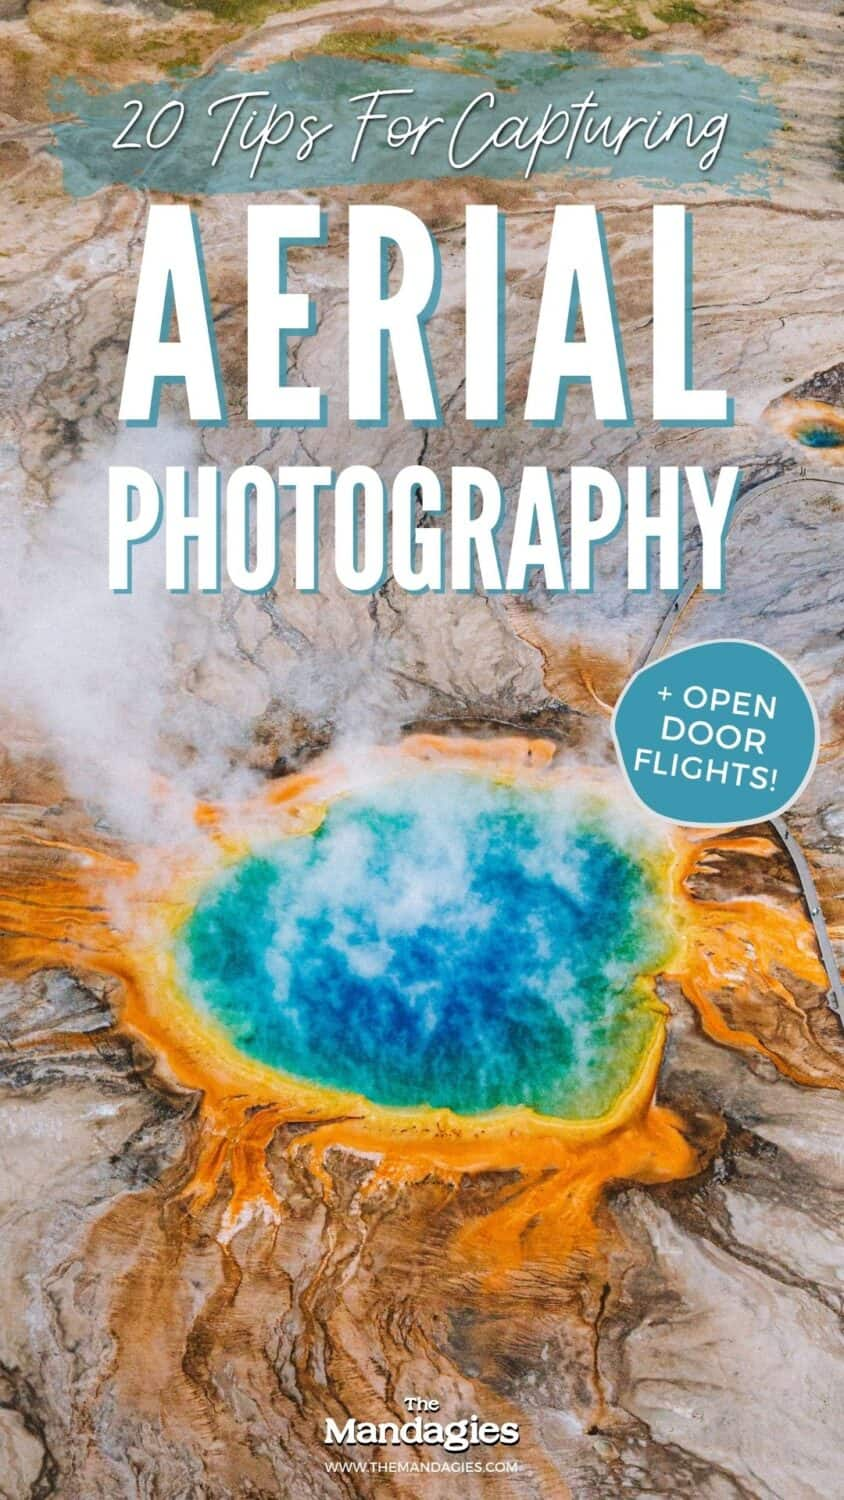 Getting ready for your first helicopter photography tour? We're sharing the best aerial photography tips and tricks, and gear recommendations from B&H Photo, and camera settings for the best aerial photos! #aerialphotography #photography #photos #helicopterride #mountains #cityscapes #newyork #travel #adventure #plane #nature #photography